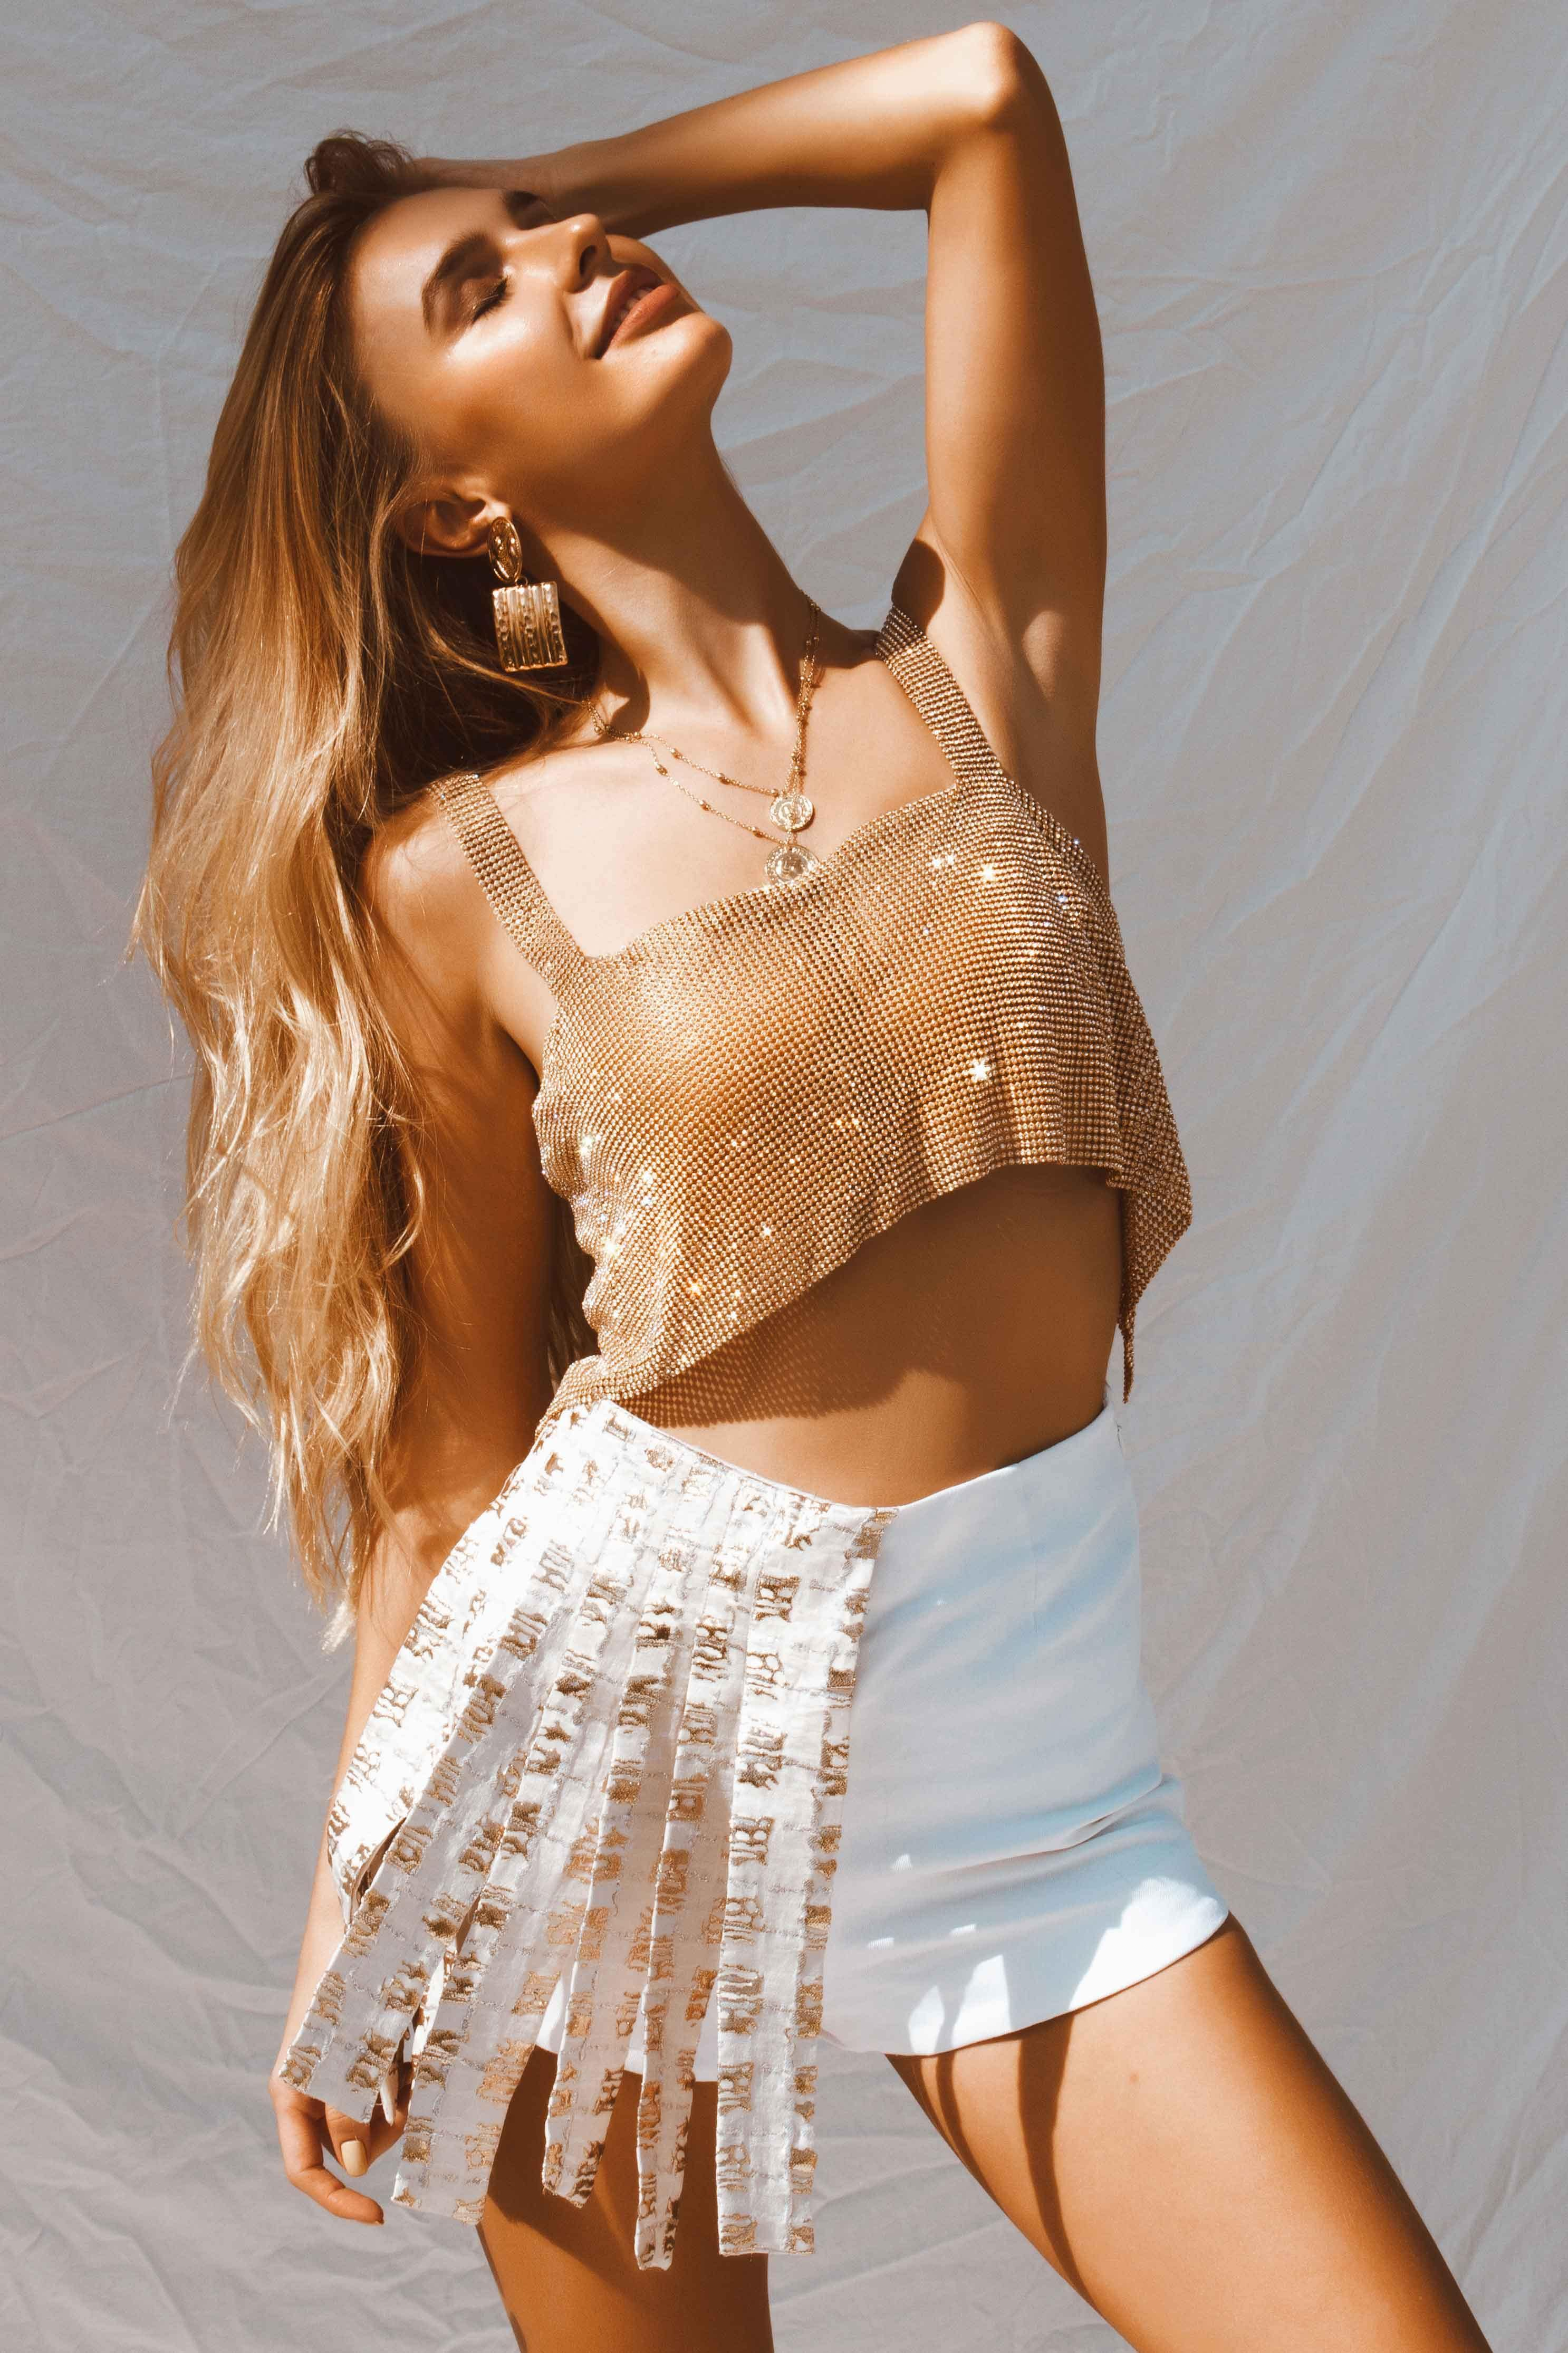 ALL FRINGED UP - SHORTS | Women's Online Shopping | CHICLEFRIQUE  (2031324102745)